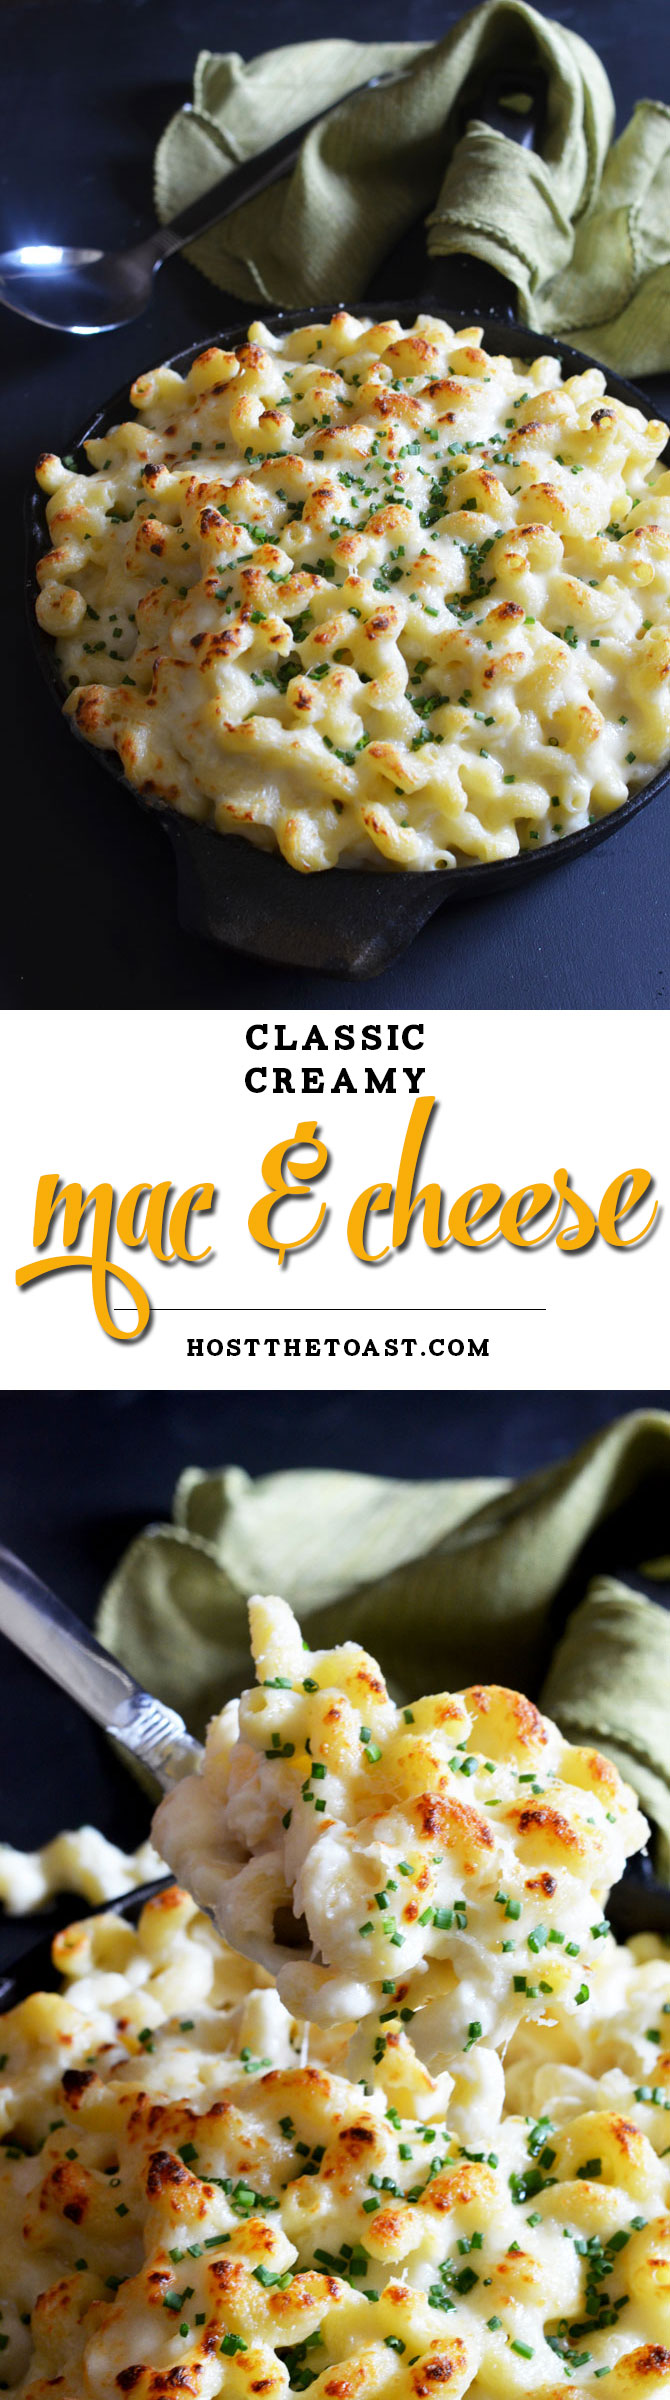 Classic Creamy Macaroni and Cheese. Simply the best. | hostthetoast.com